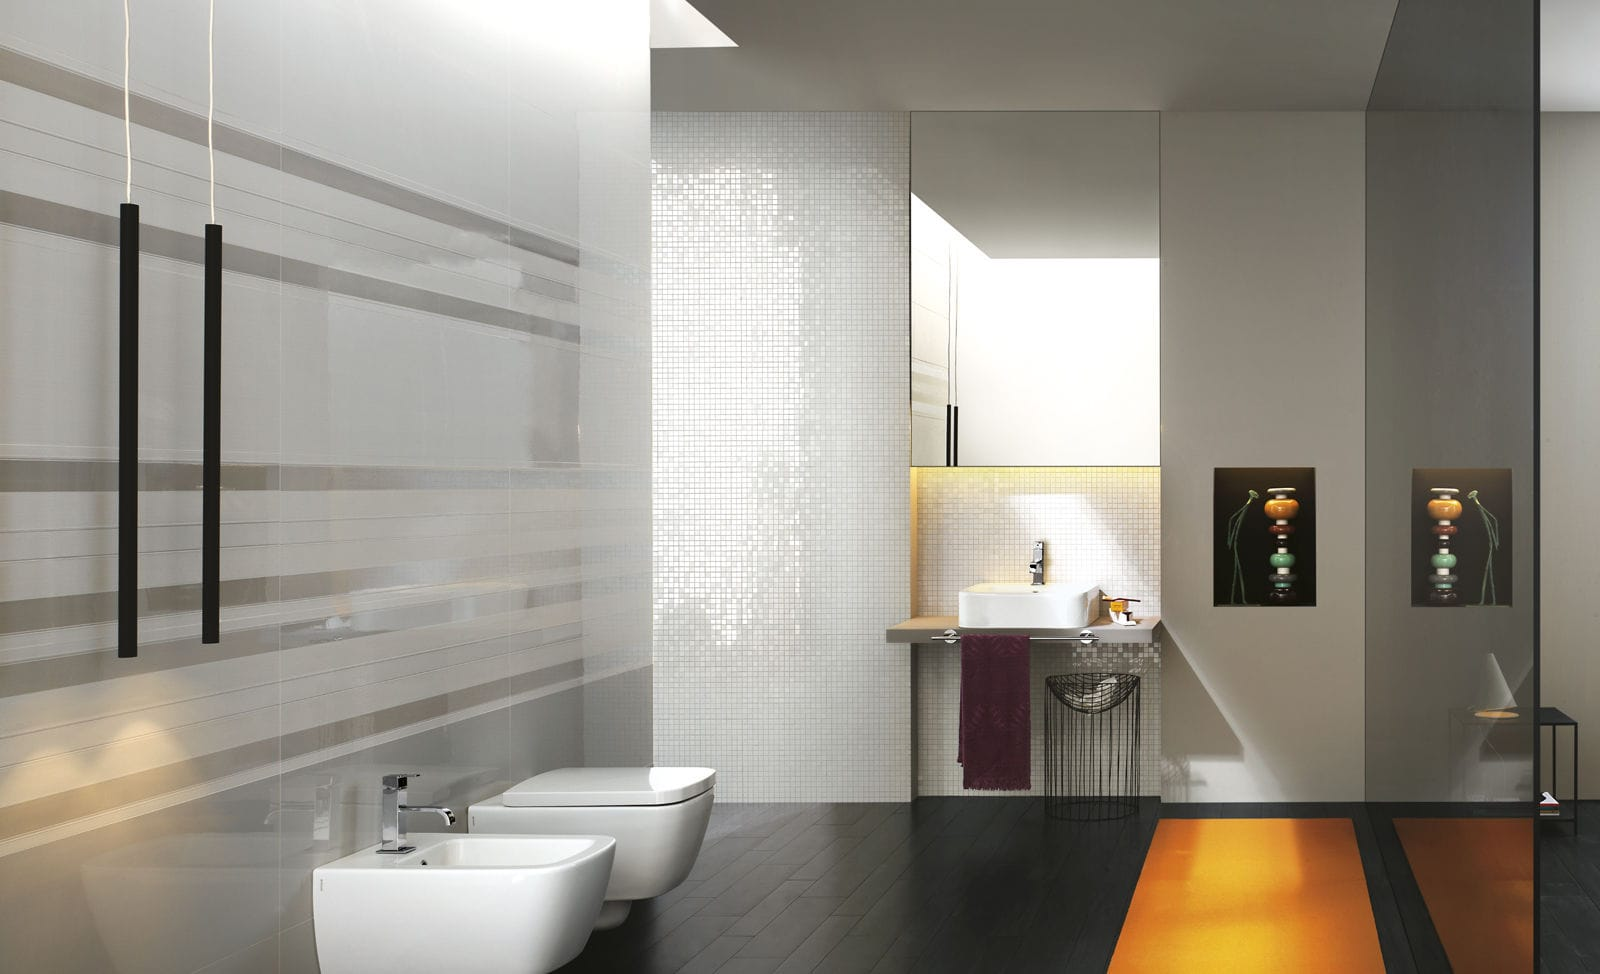 Bathroom tile / wall / ceramic / reflective - STILL - Ragno - Videos